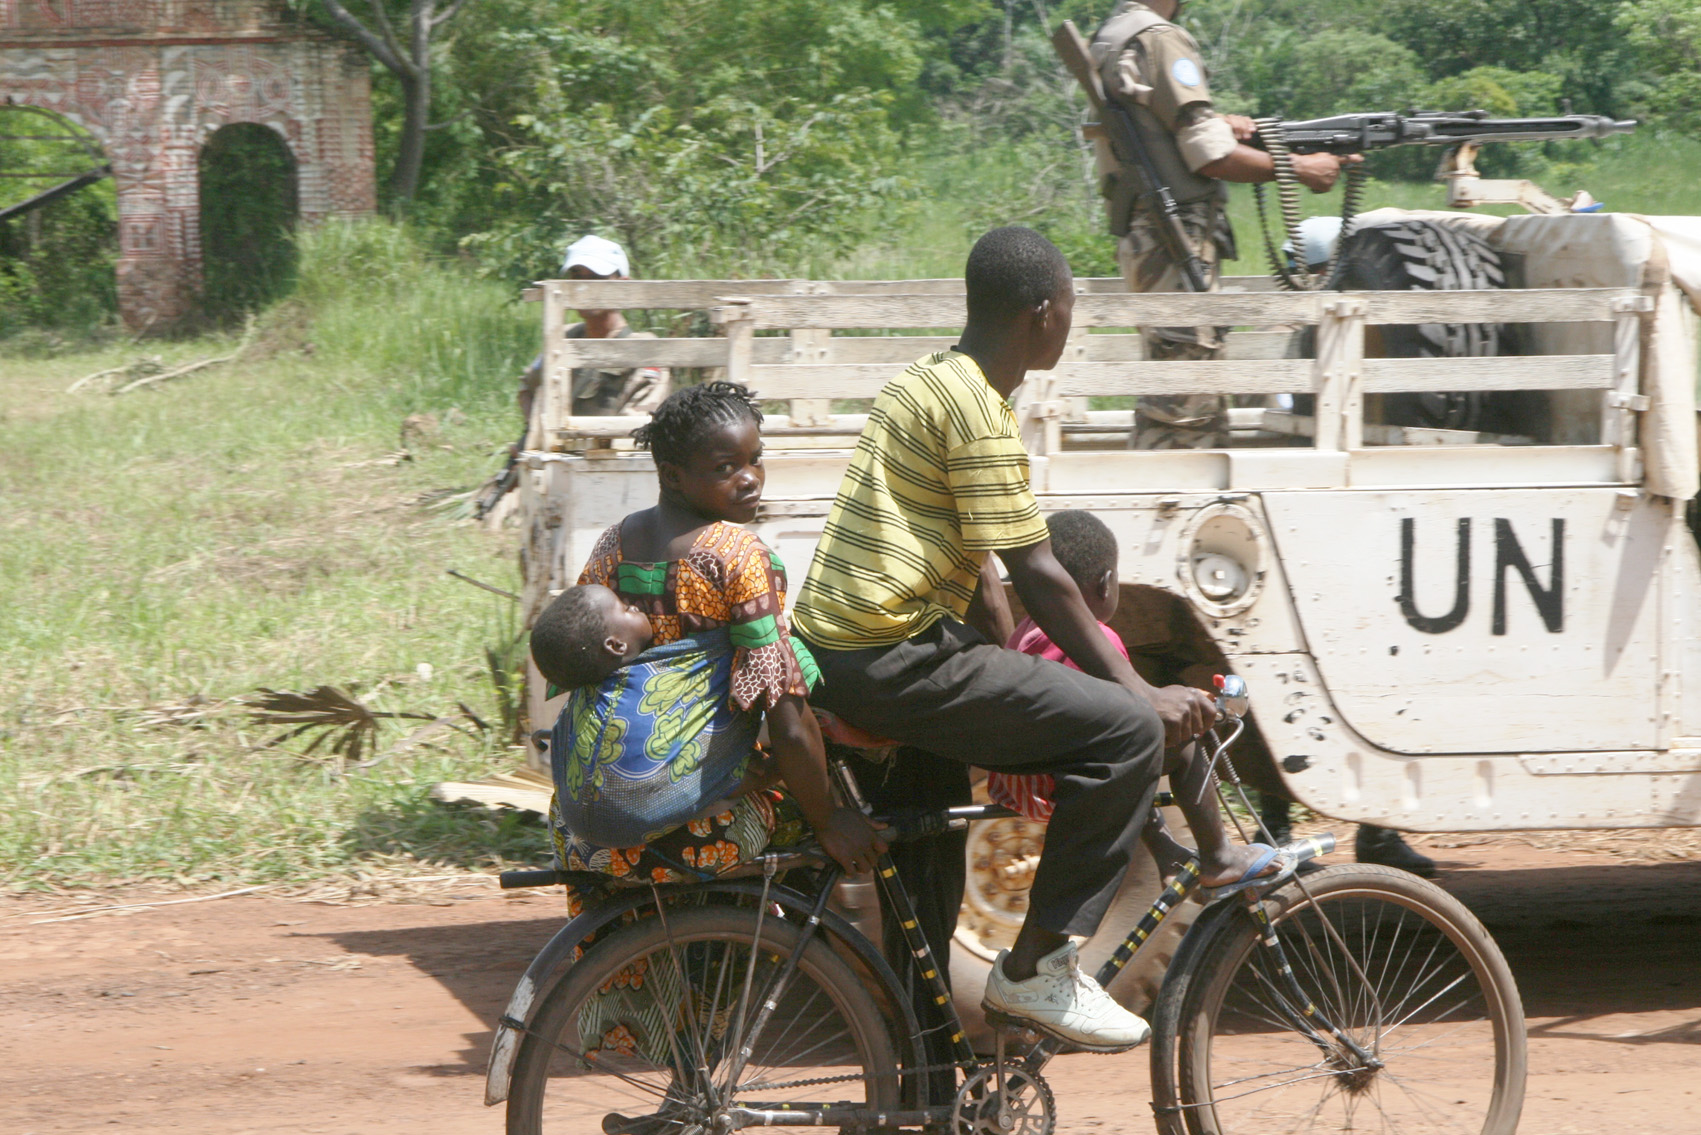 The presence of UN peacekeepers and government troops in the northern DRC town of Niangara has drawn thousands of civilians displaced by Lord's Resistance Army rebels. The LRA killed up to 500 people in northern DRC between January and May 2010 and prompt